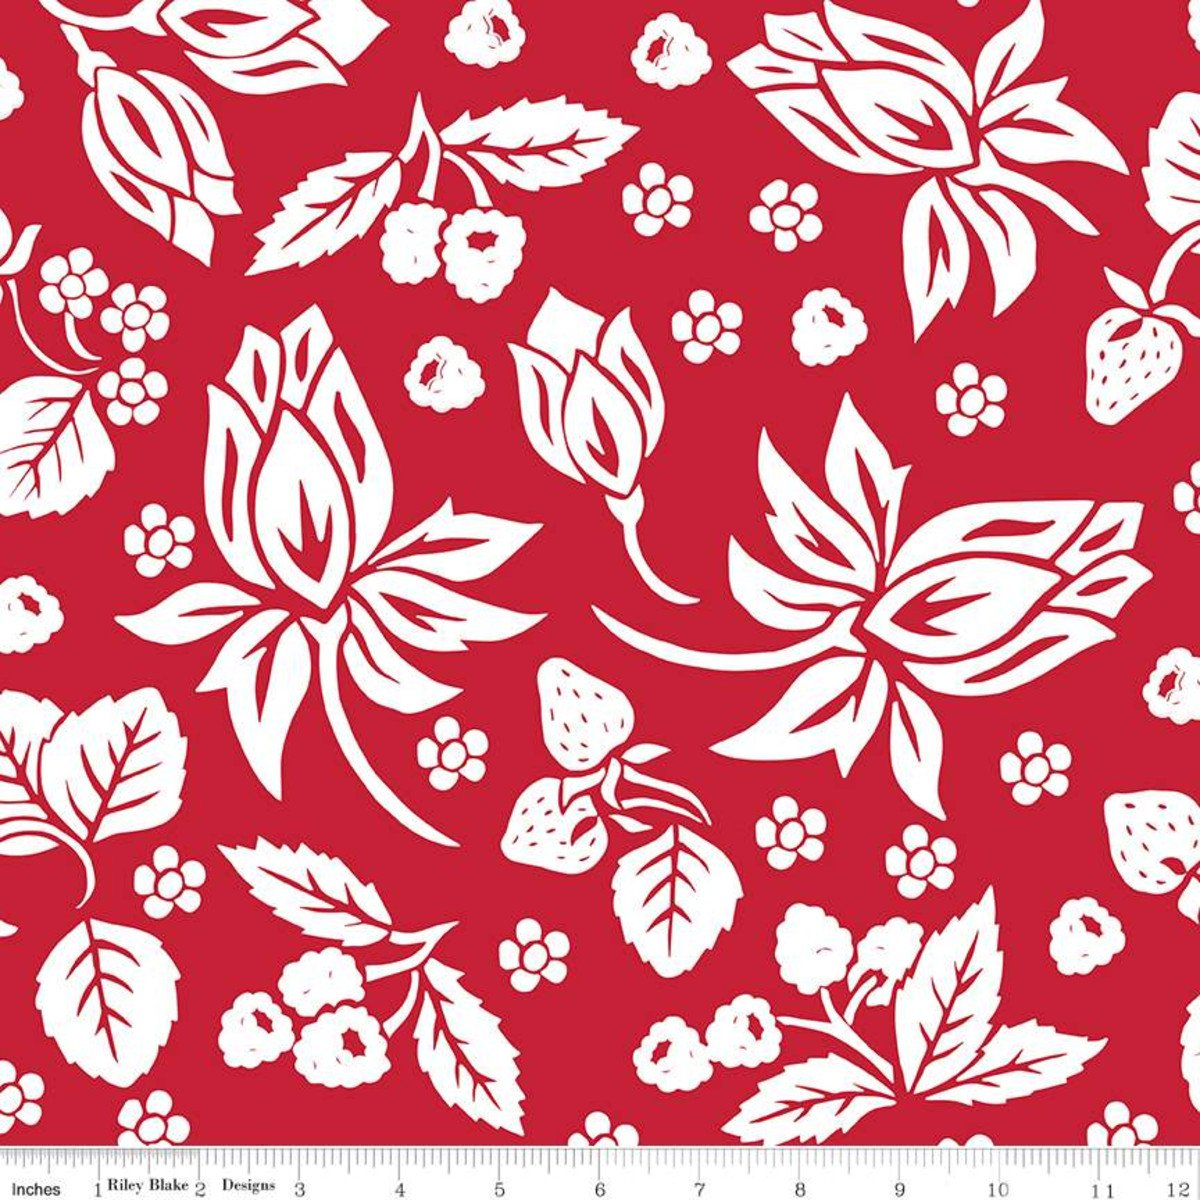 It's the Berries Red Main Print